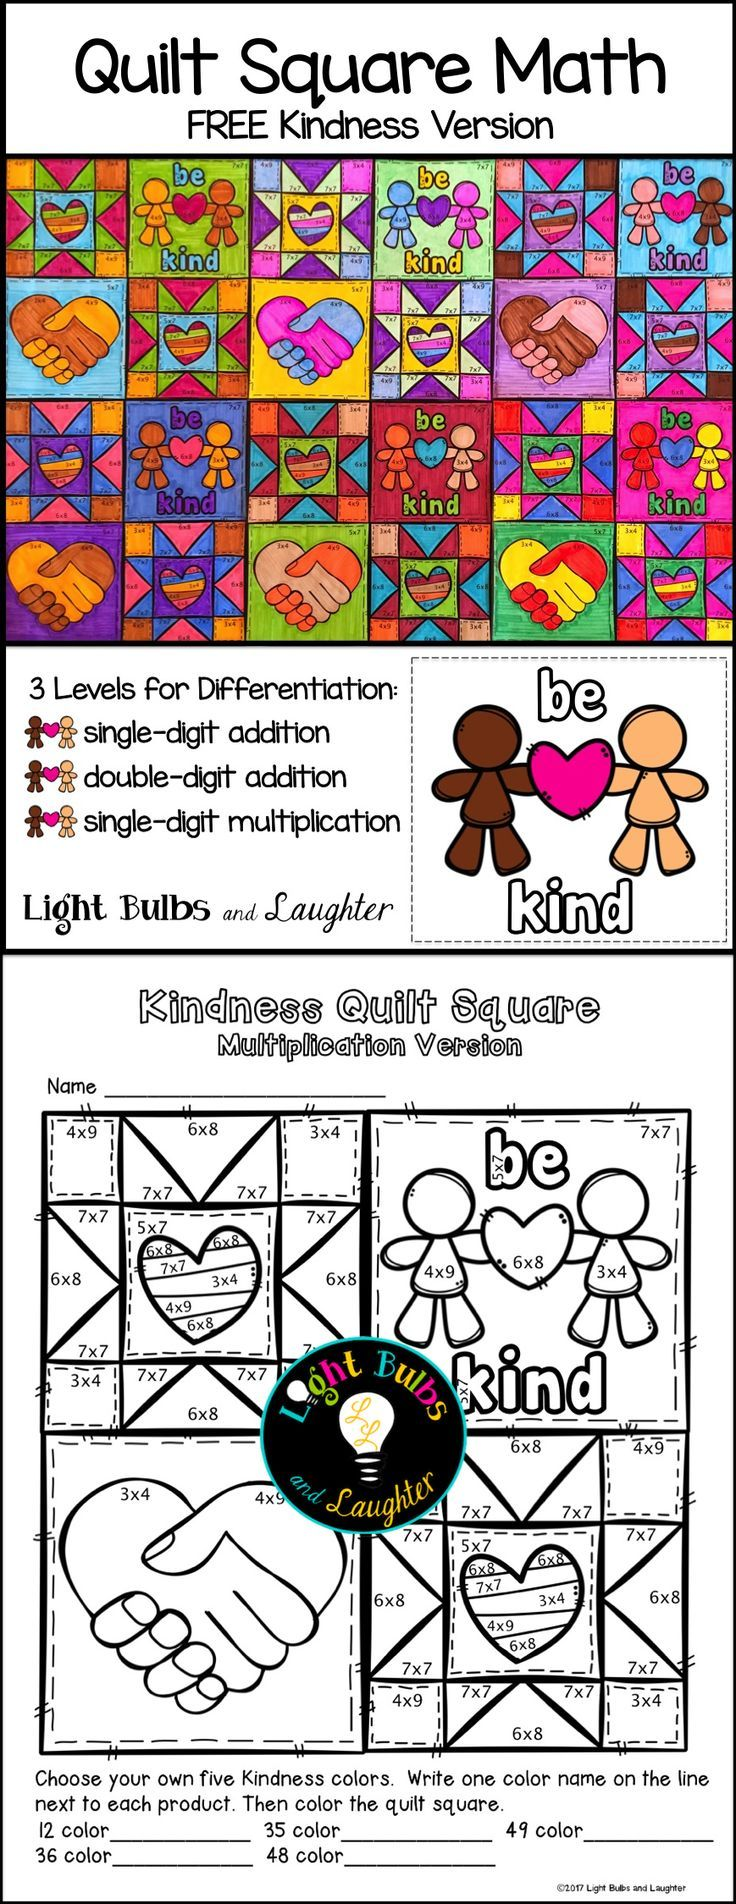 Free Kindness Quilt Math Art For Your Classroom Please